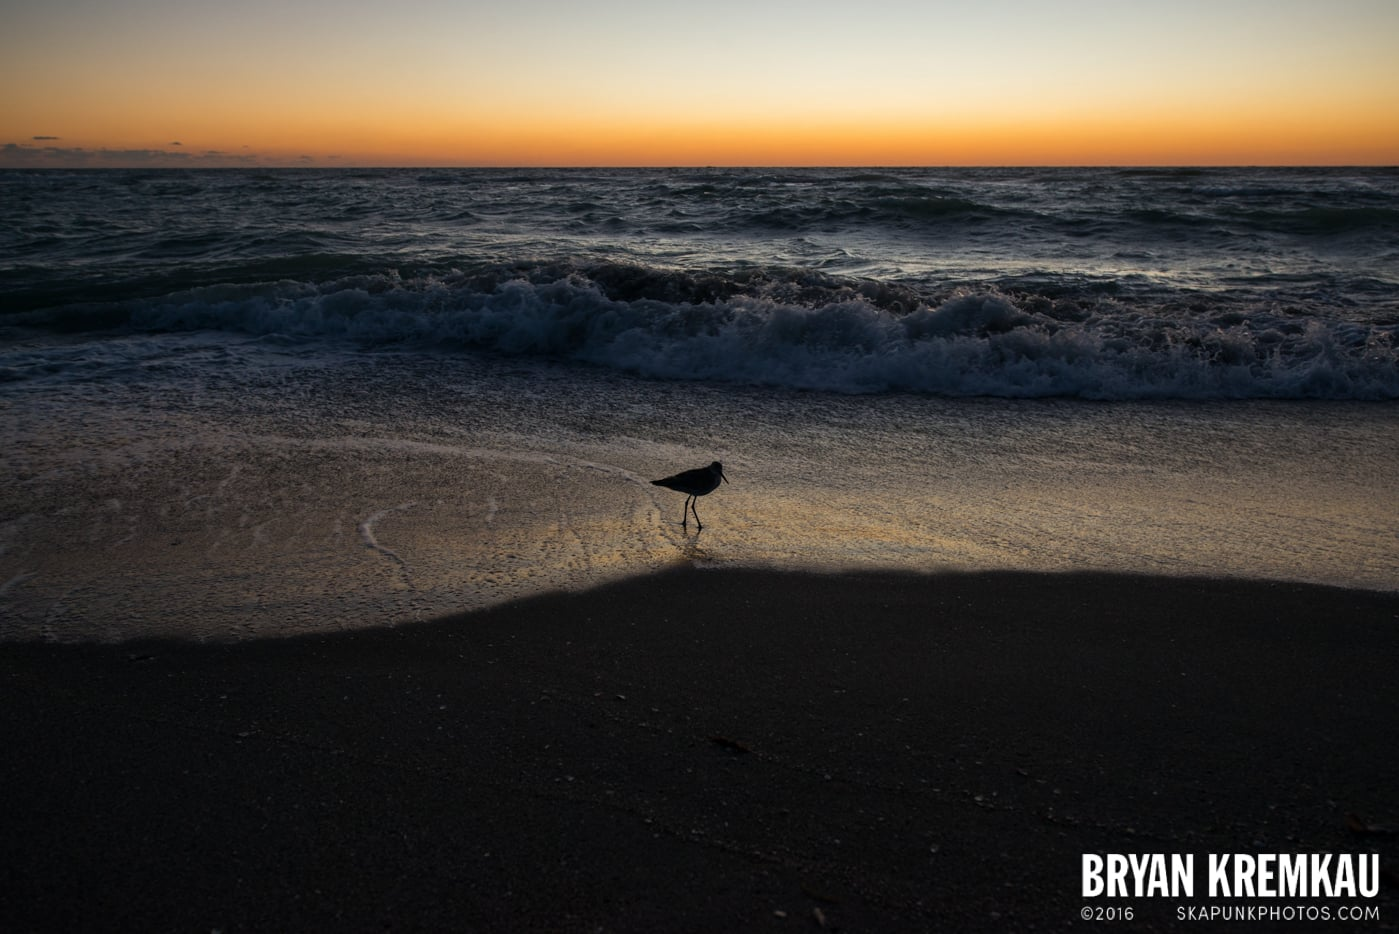 Sunsets, Astrophotography & Birds @ Venice, Florida - 10.25.14 - 11.5.14 (92)